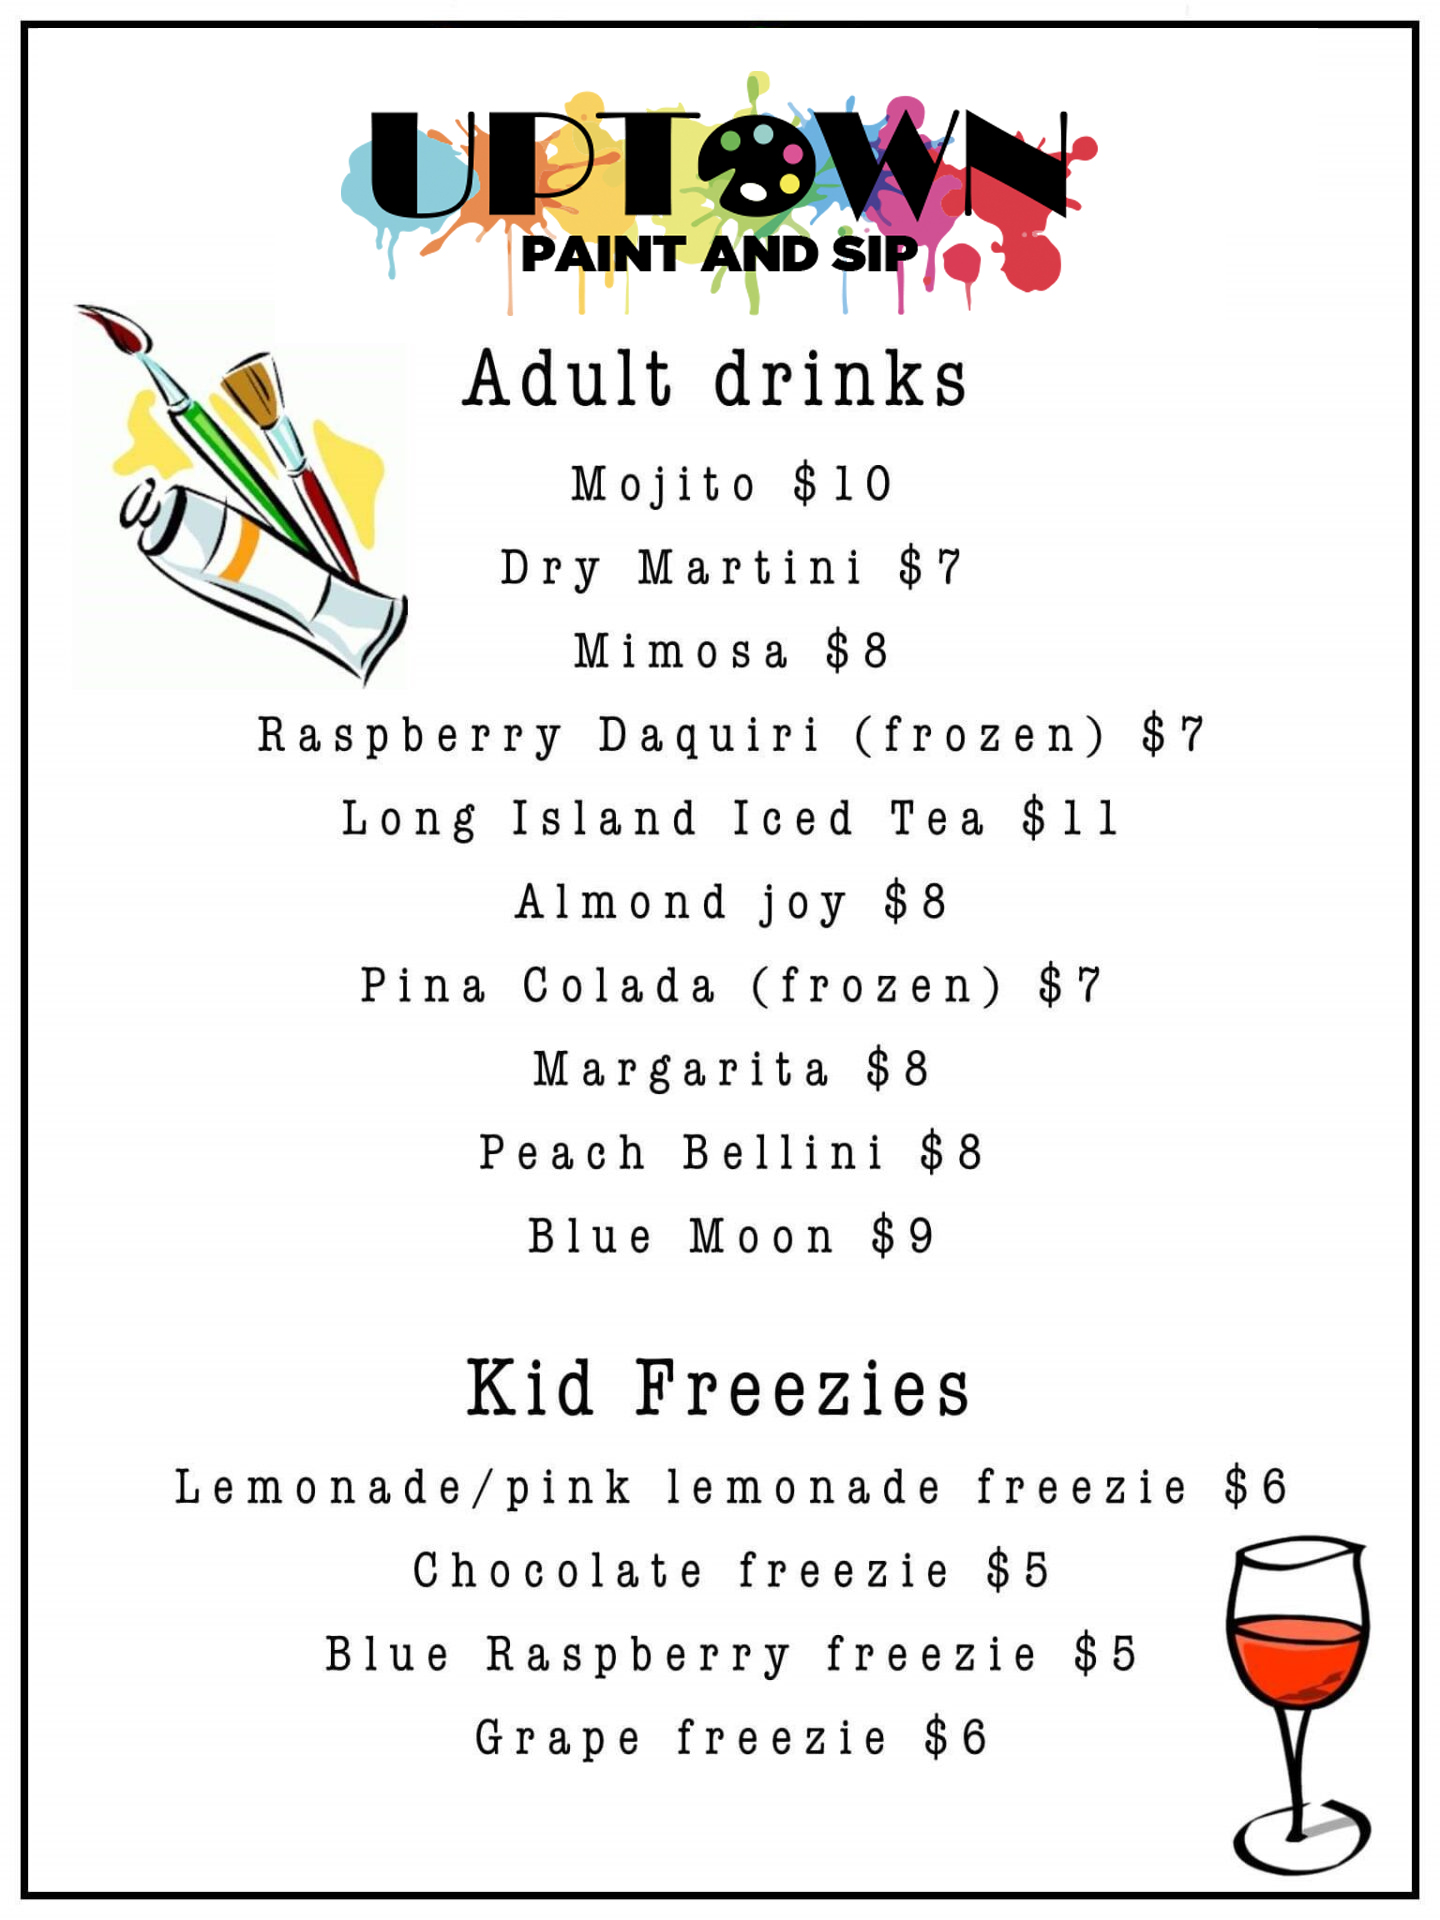 Uptown Paint and Sip Jupiter FL bar menu perfect for girls night out and date night